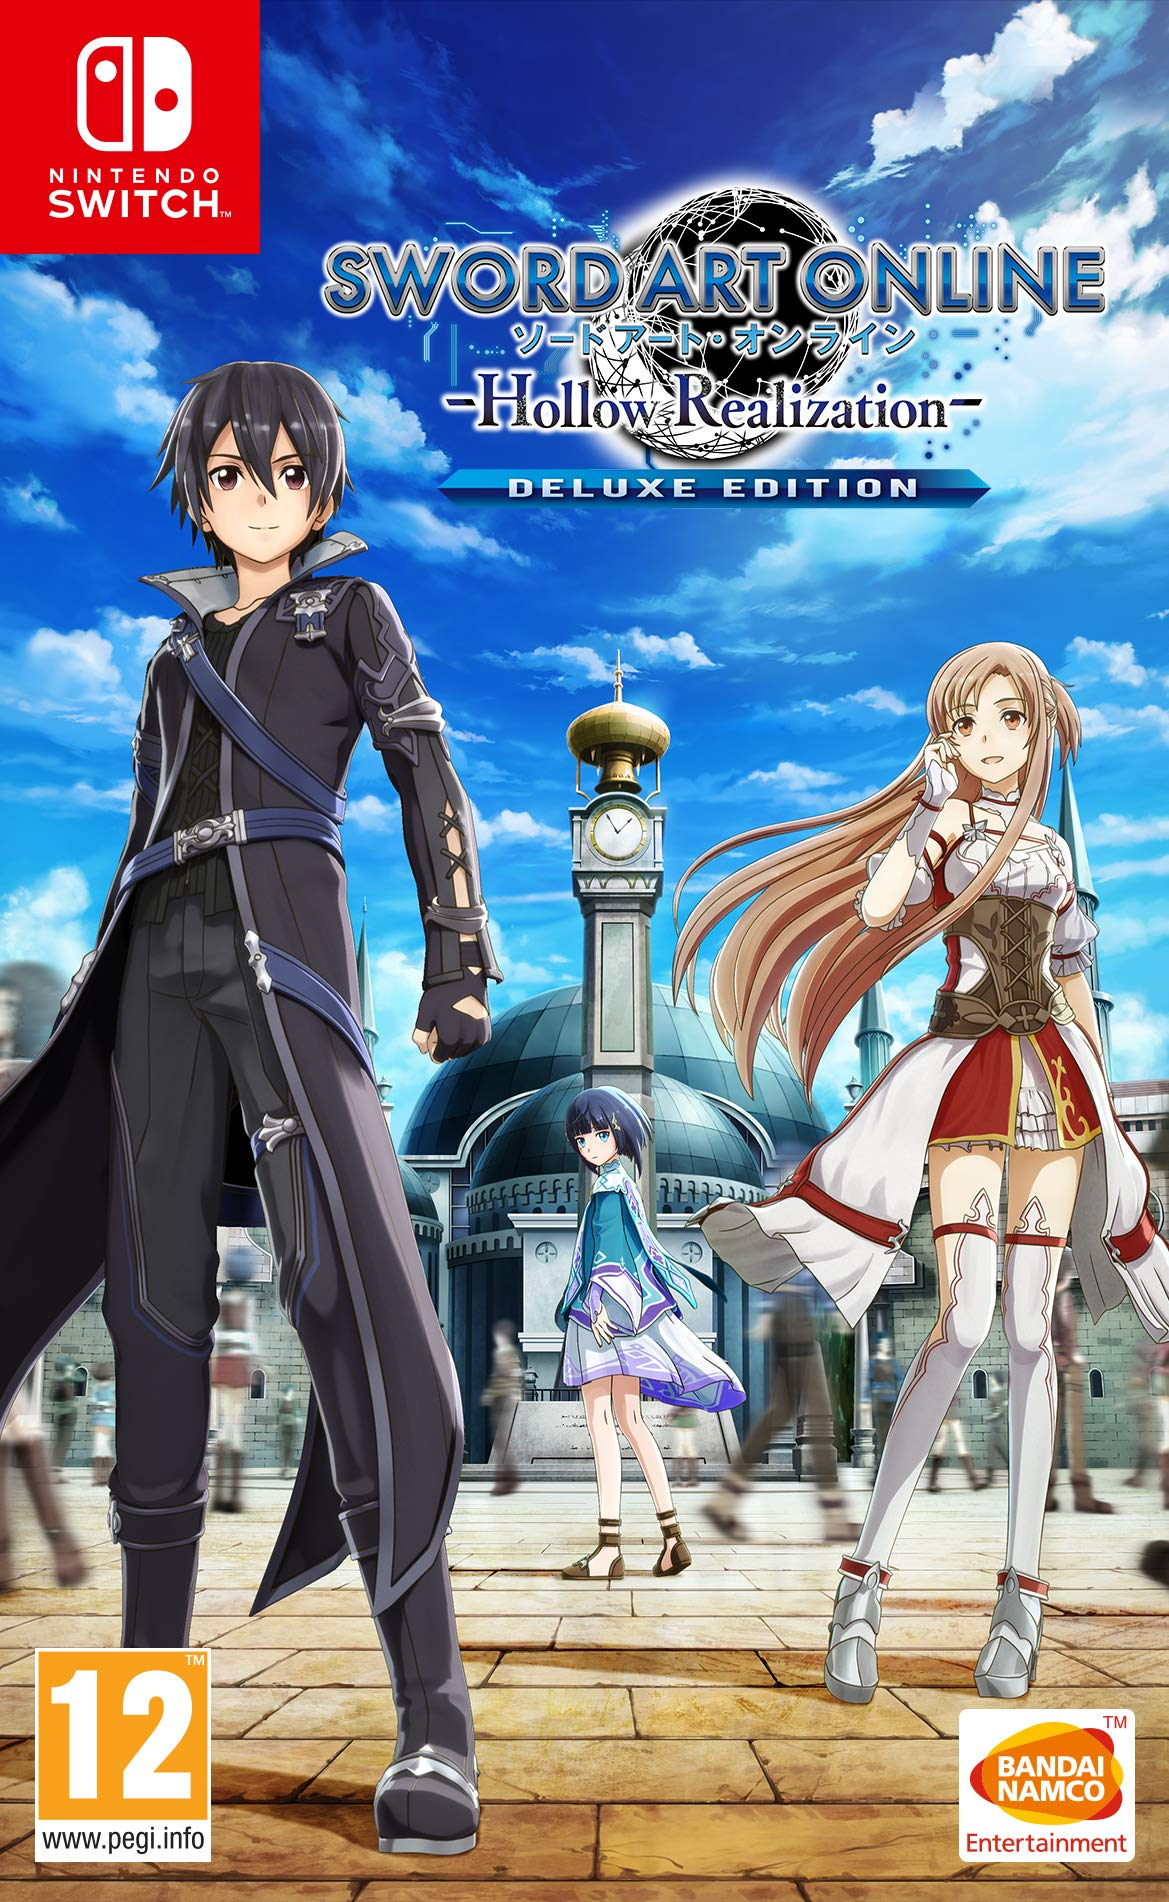 Sword Art Online: Hollow Realisation Deluxe Edition (Nintendo Switch)